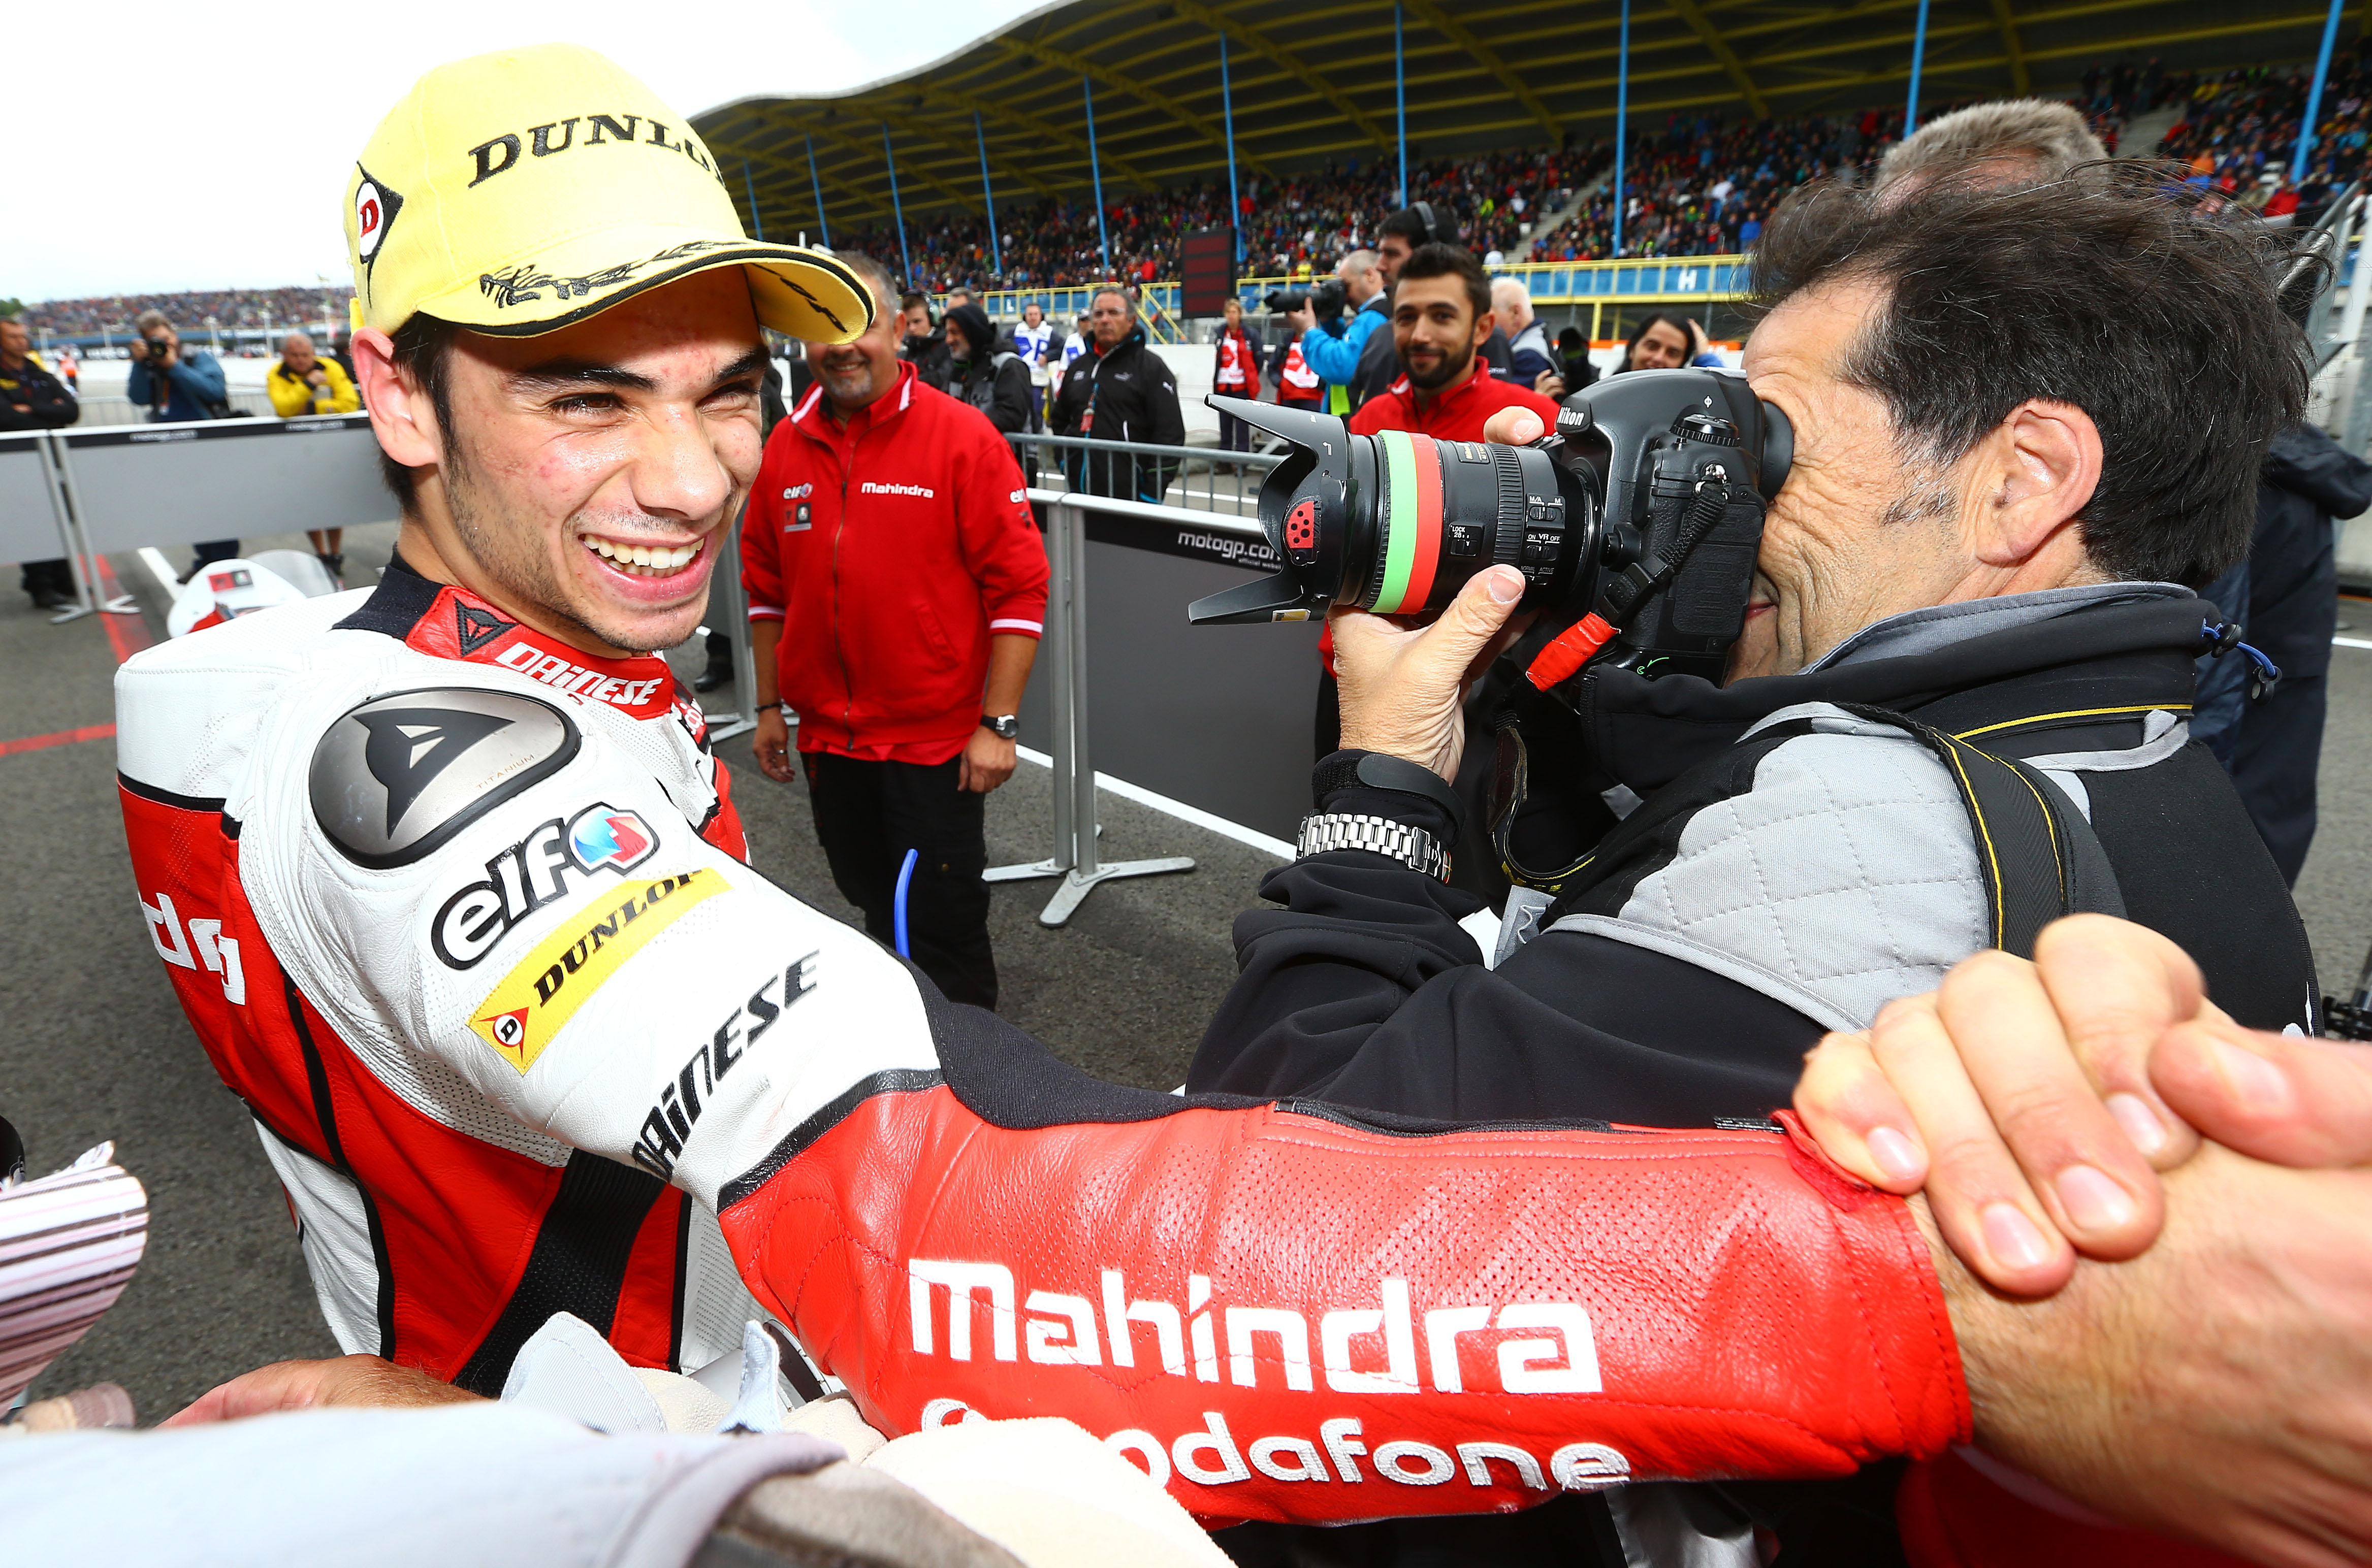 First Moto3 pole for Mahindra at Assen